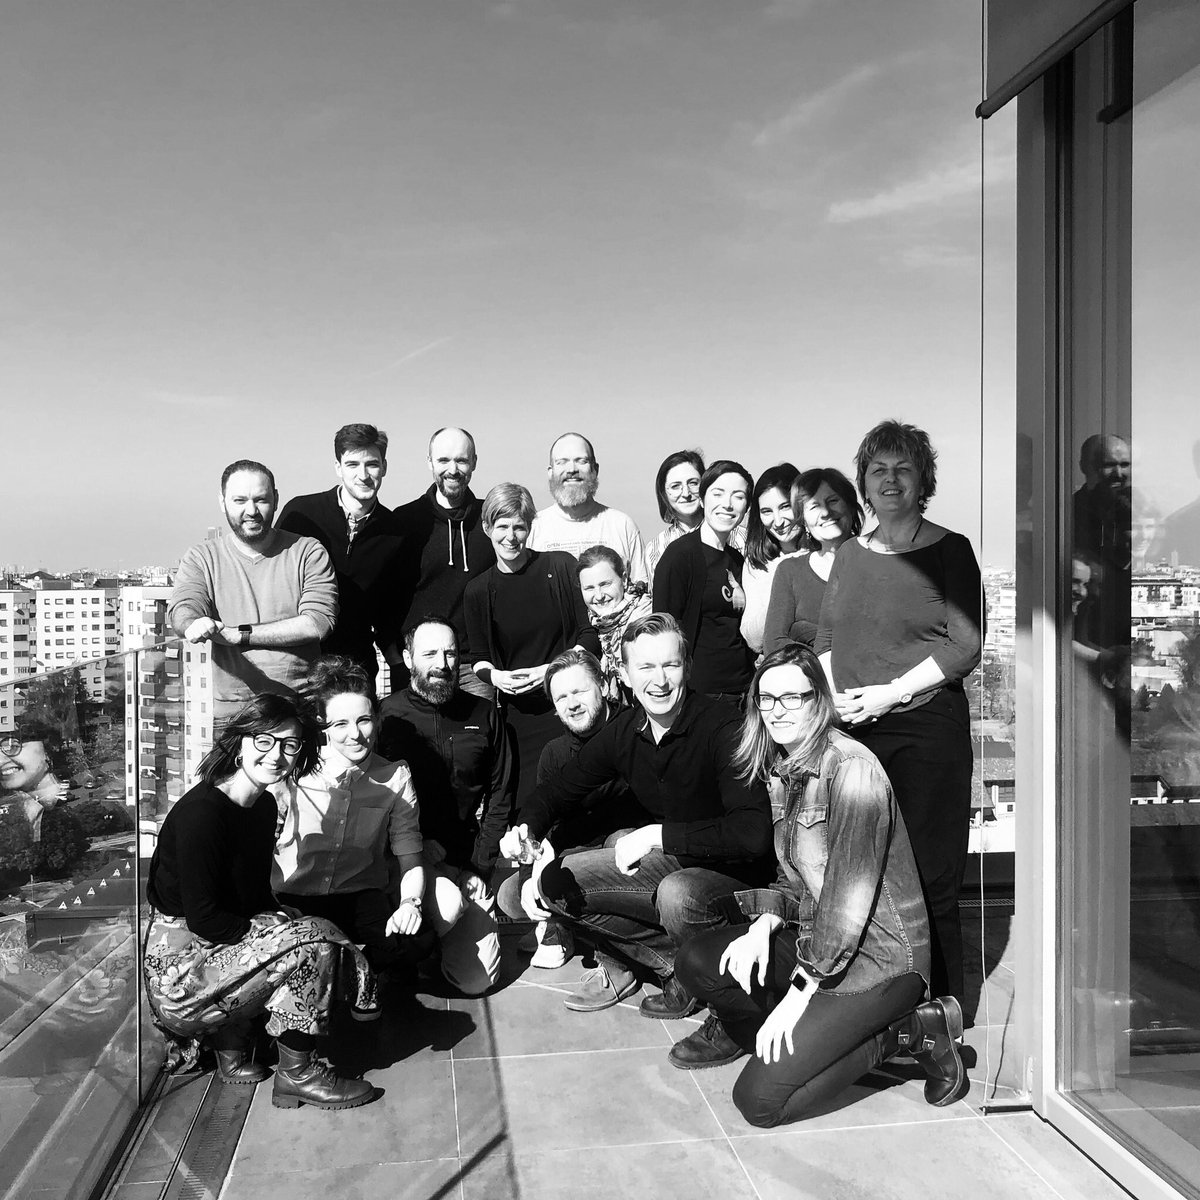 test Twitter Media - In #Milano a great team meeting for @CareablesOrg #openhealthcare #openhealth #codesign #maker @weareGIG @waag @opendotlab @ZSInnovation @AmicidiTOG https://t.co/GDwpYqbzNN